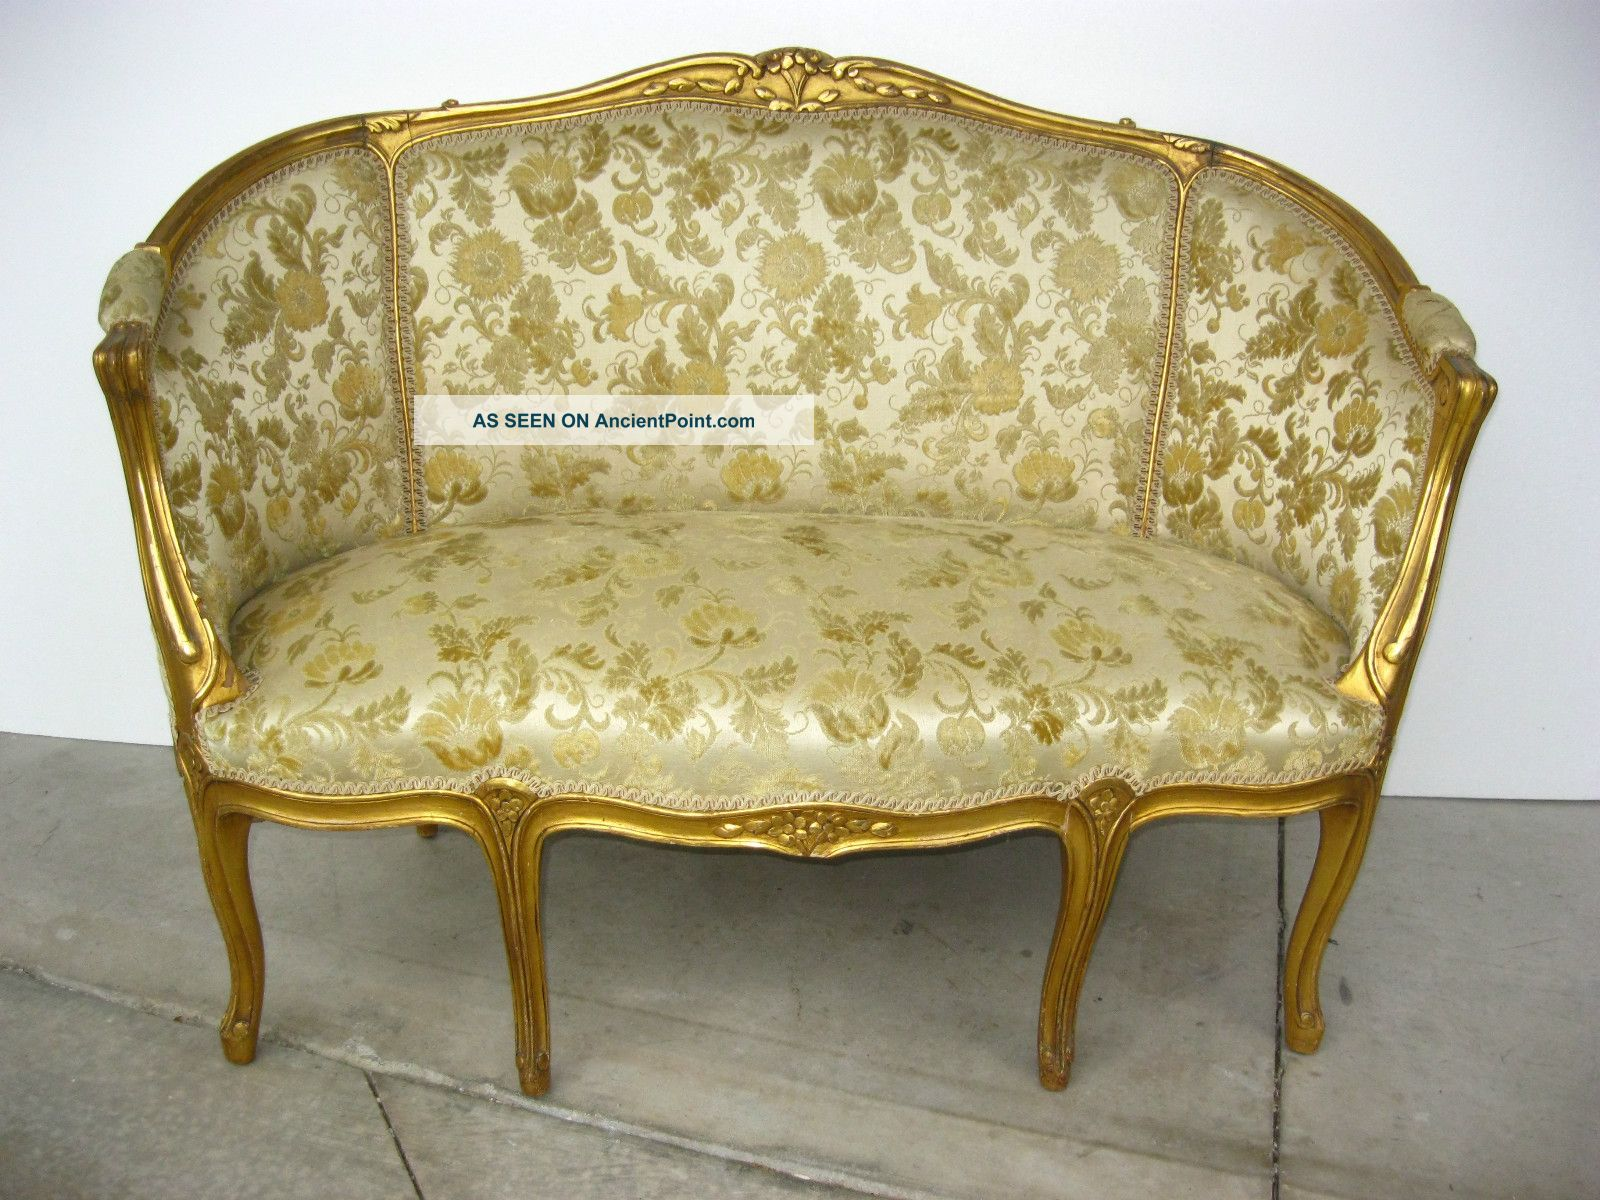 Vintage French Provincial Style Gold Gilt Gold Floral Velvet Fabric Settee Sofa